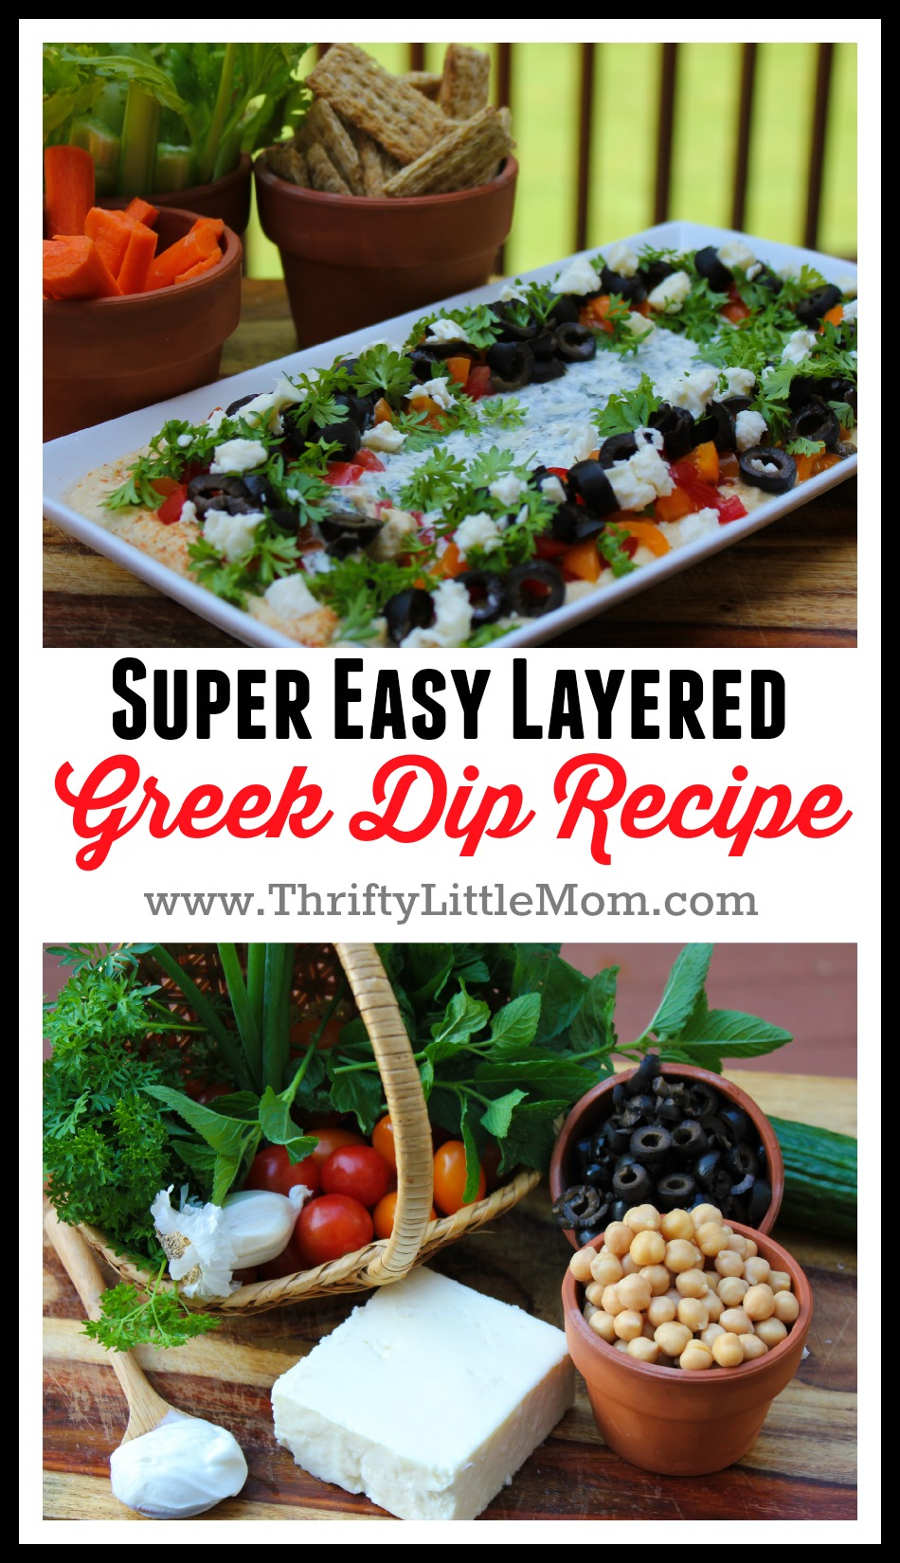 Super Easy Layered Greek Dip Recipe. A perfect party dip